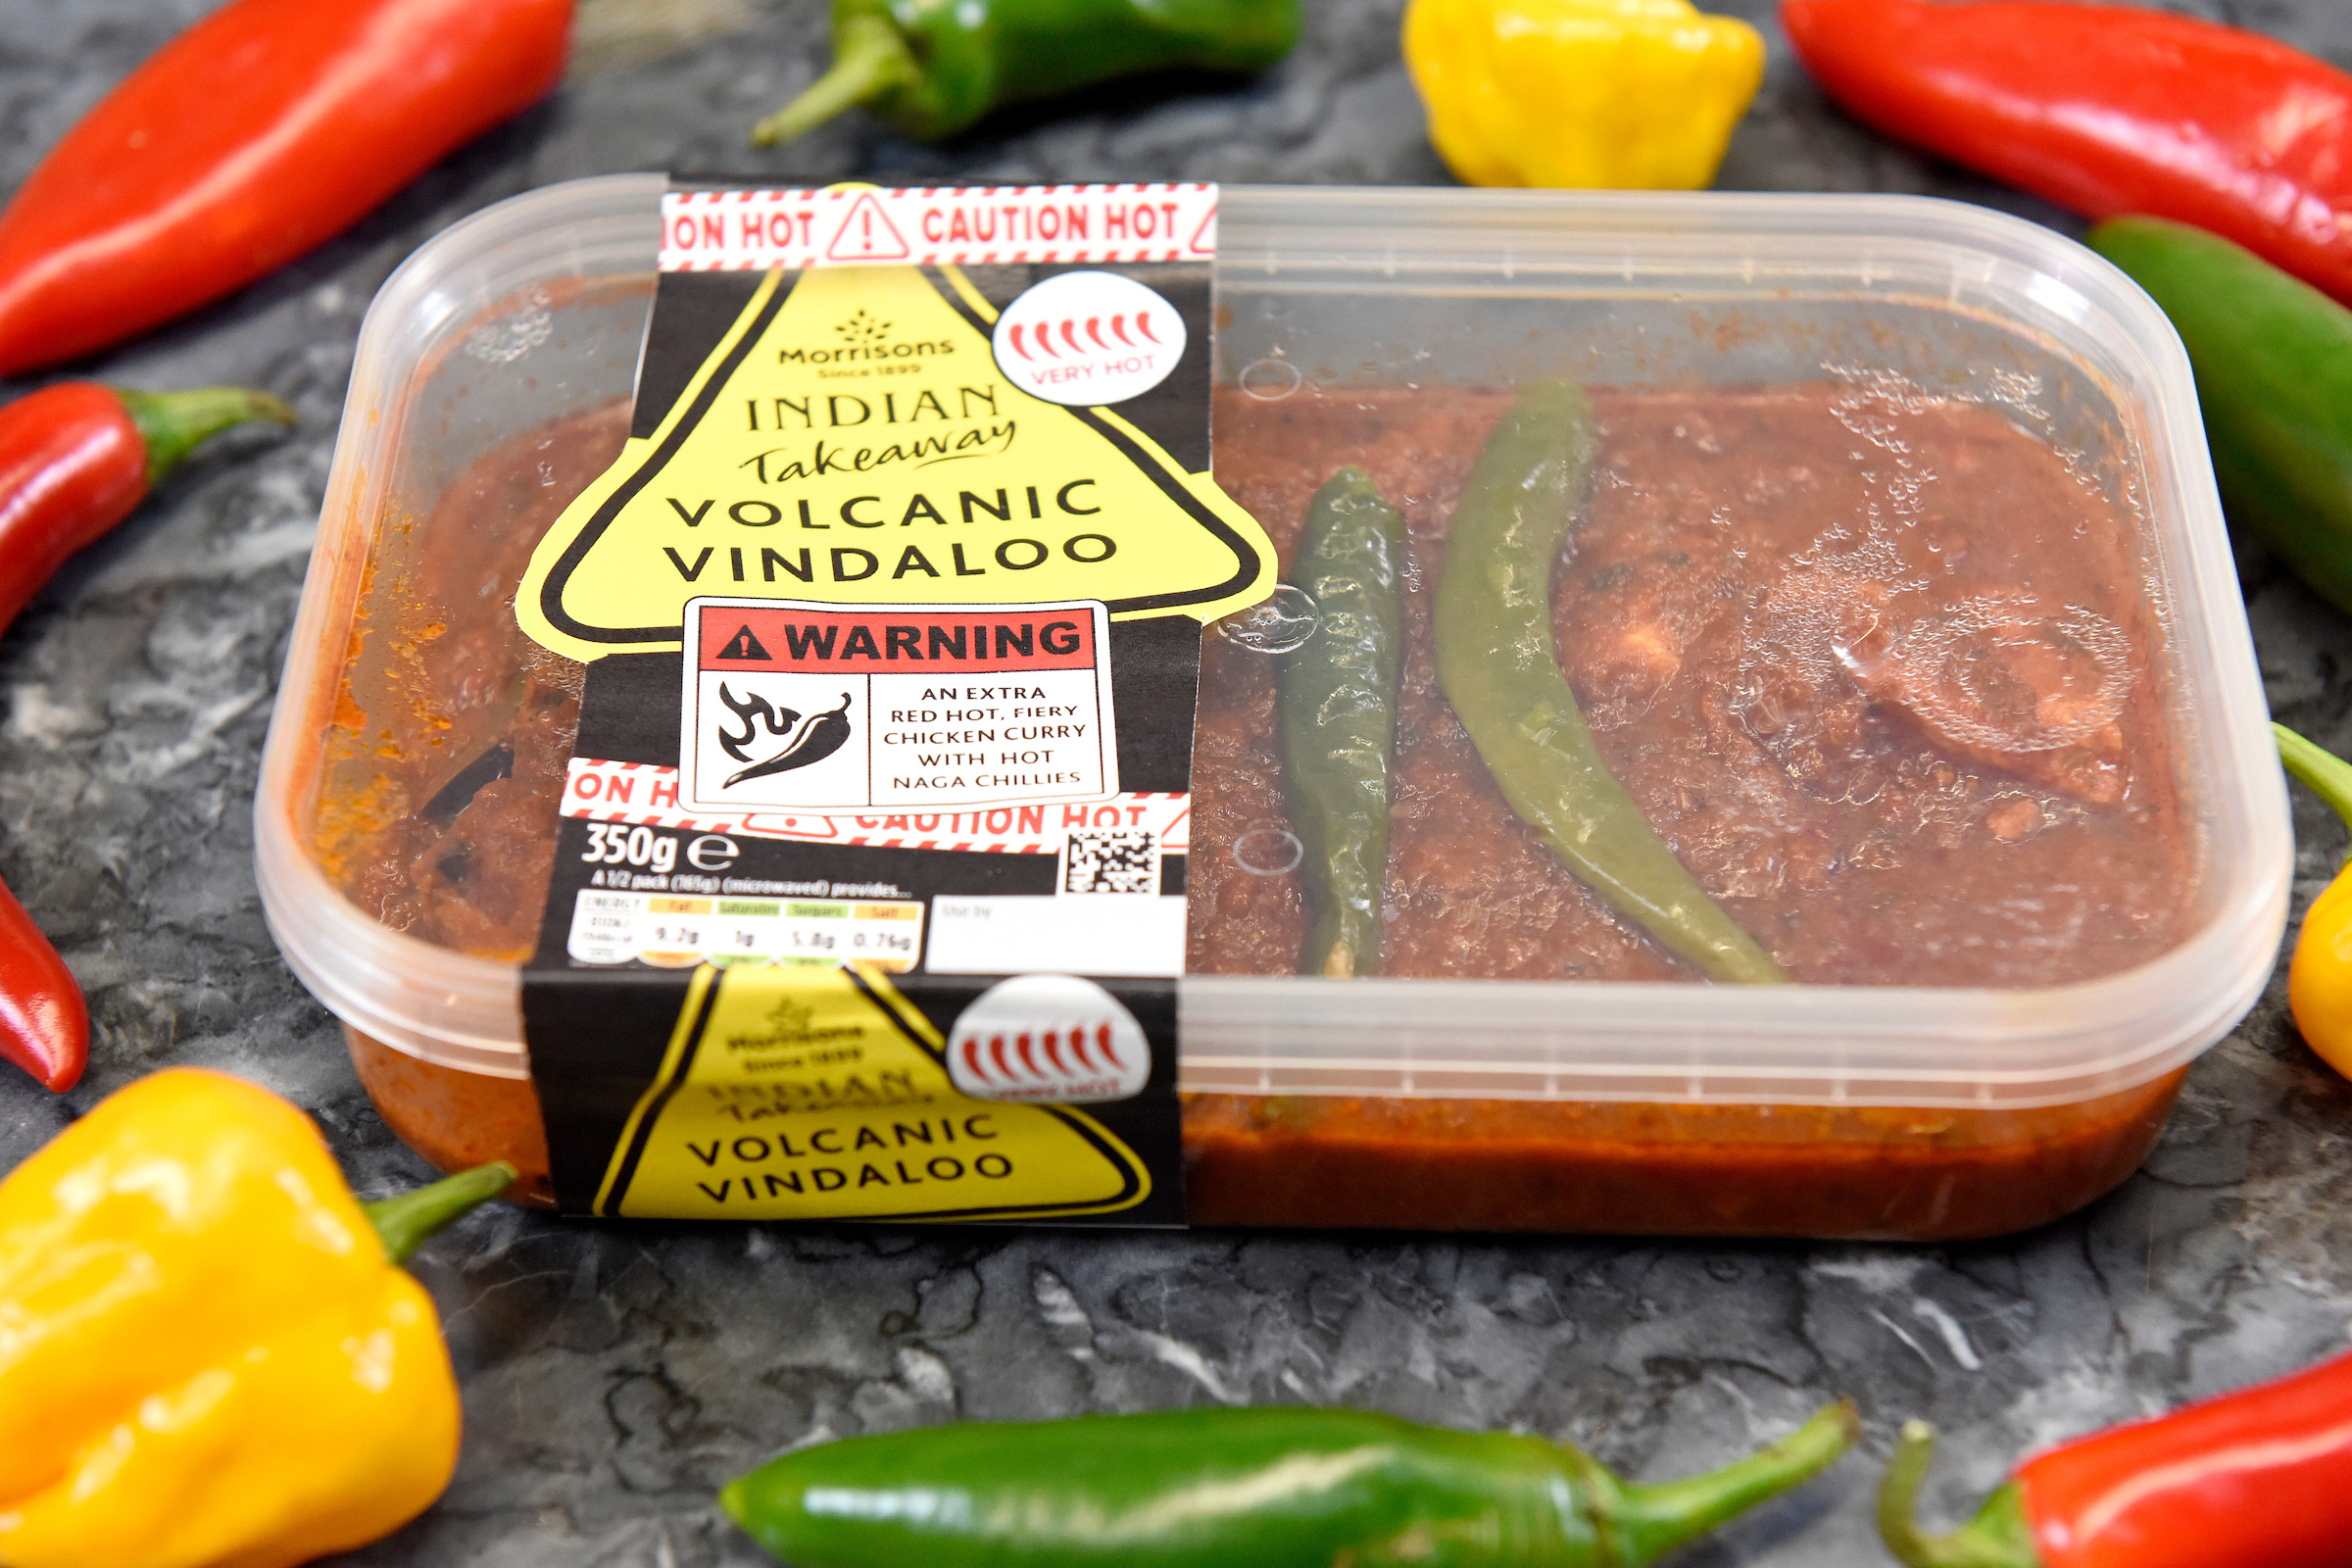 Morrisons' Volcanic Vindaloo is the hottest ever supermarket curry